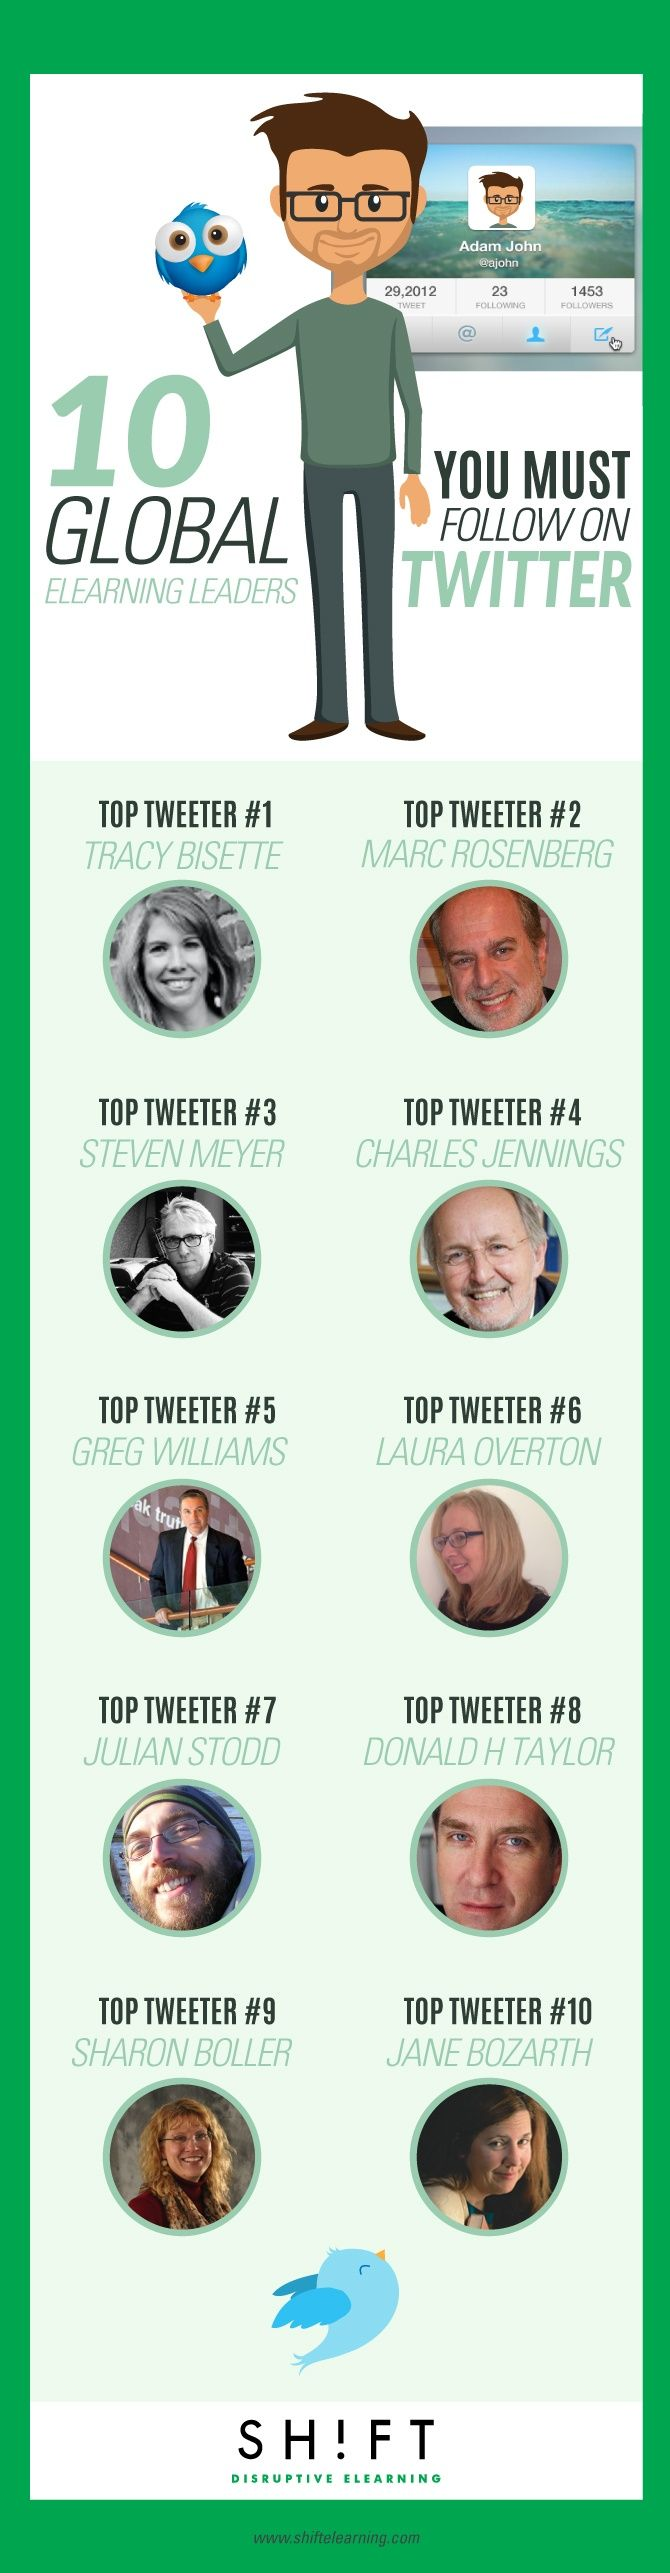 Here are the global leaders in eLearning that you should follow on Twitter.